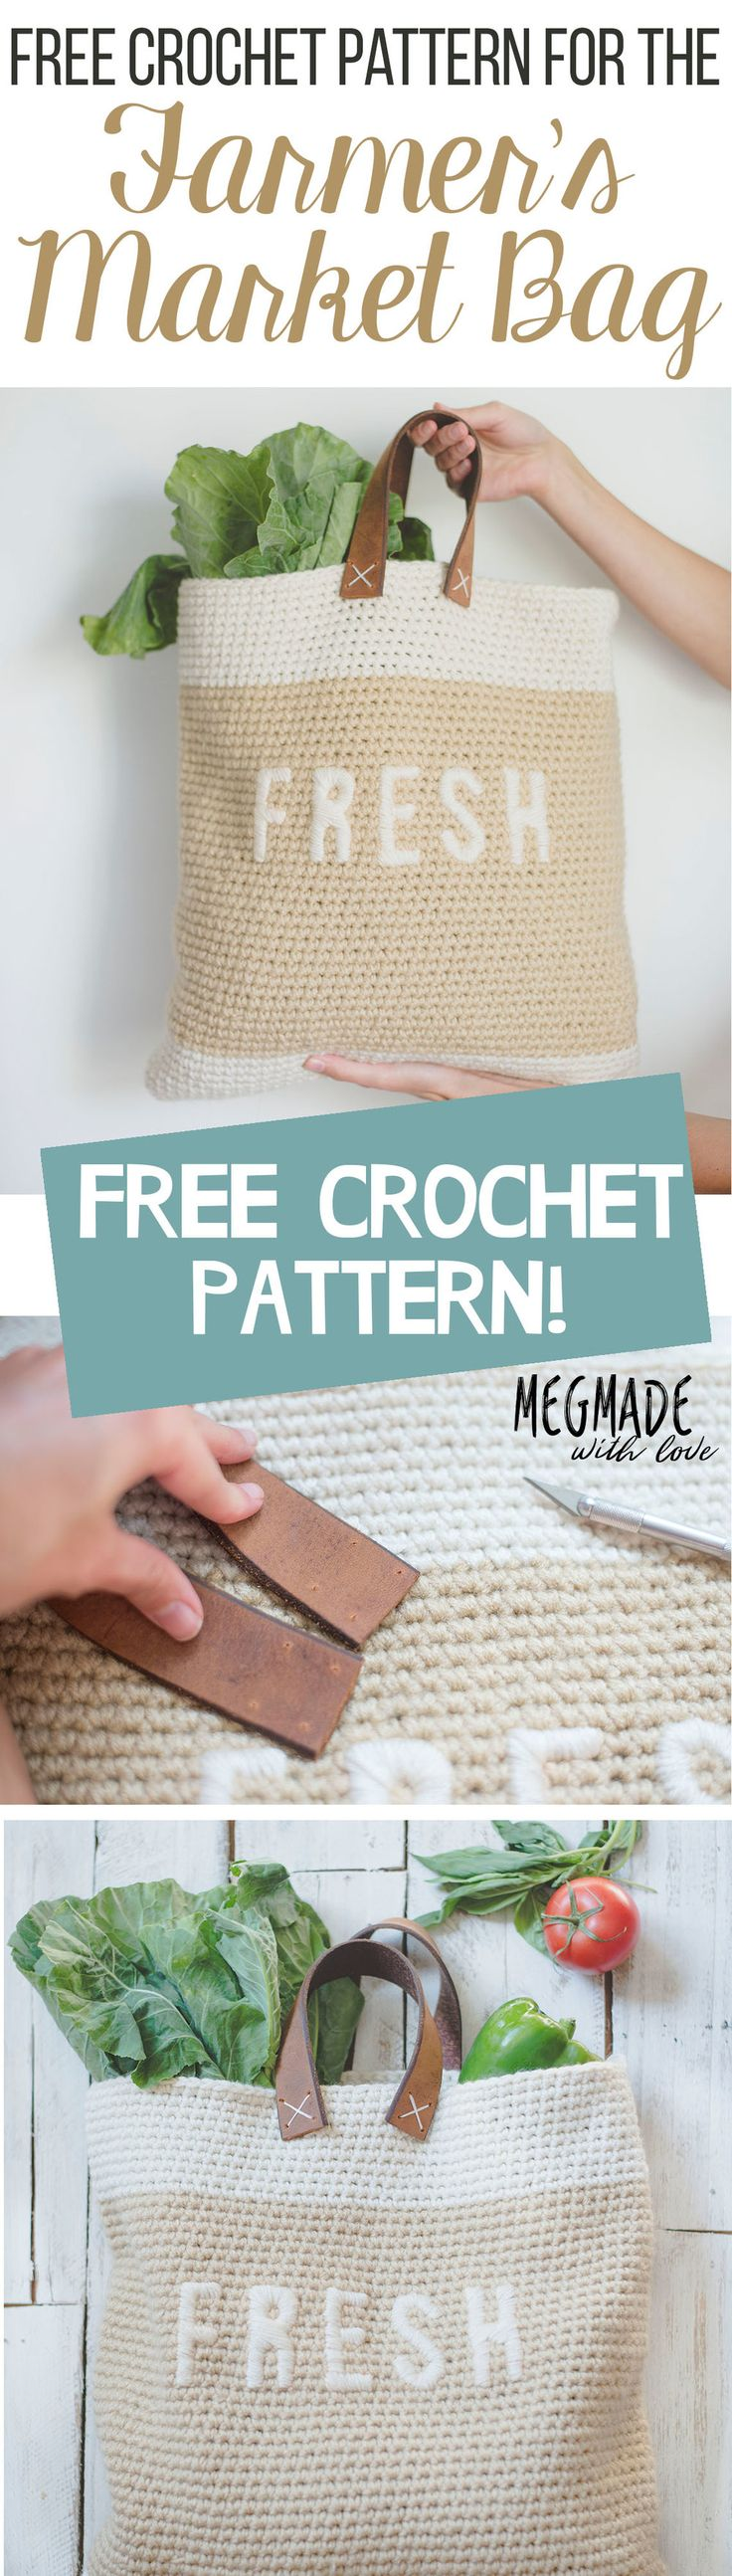 Free Crochet Pattern for the Farmer's Market Bag — Megmade with Love